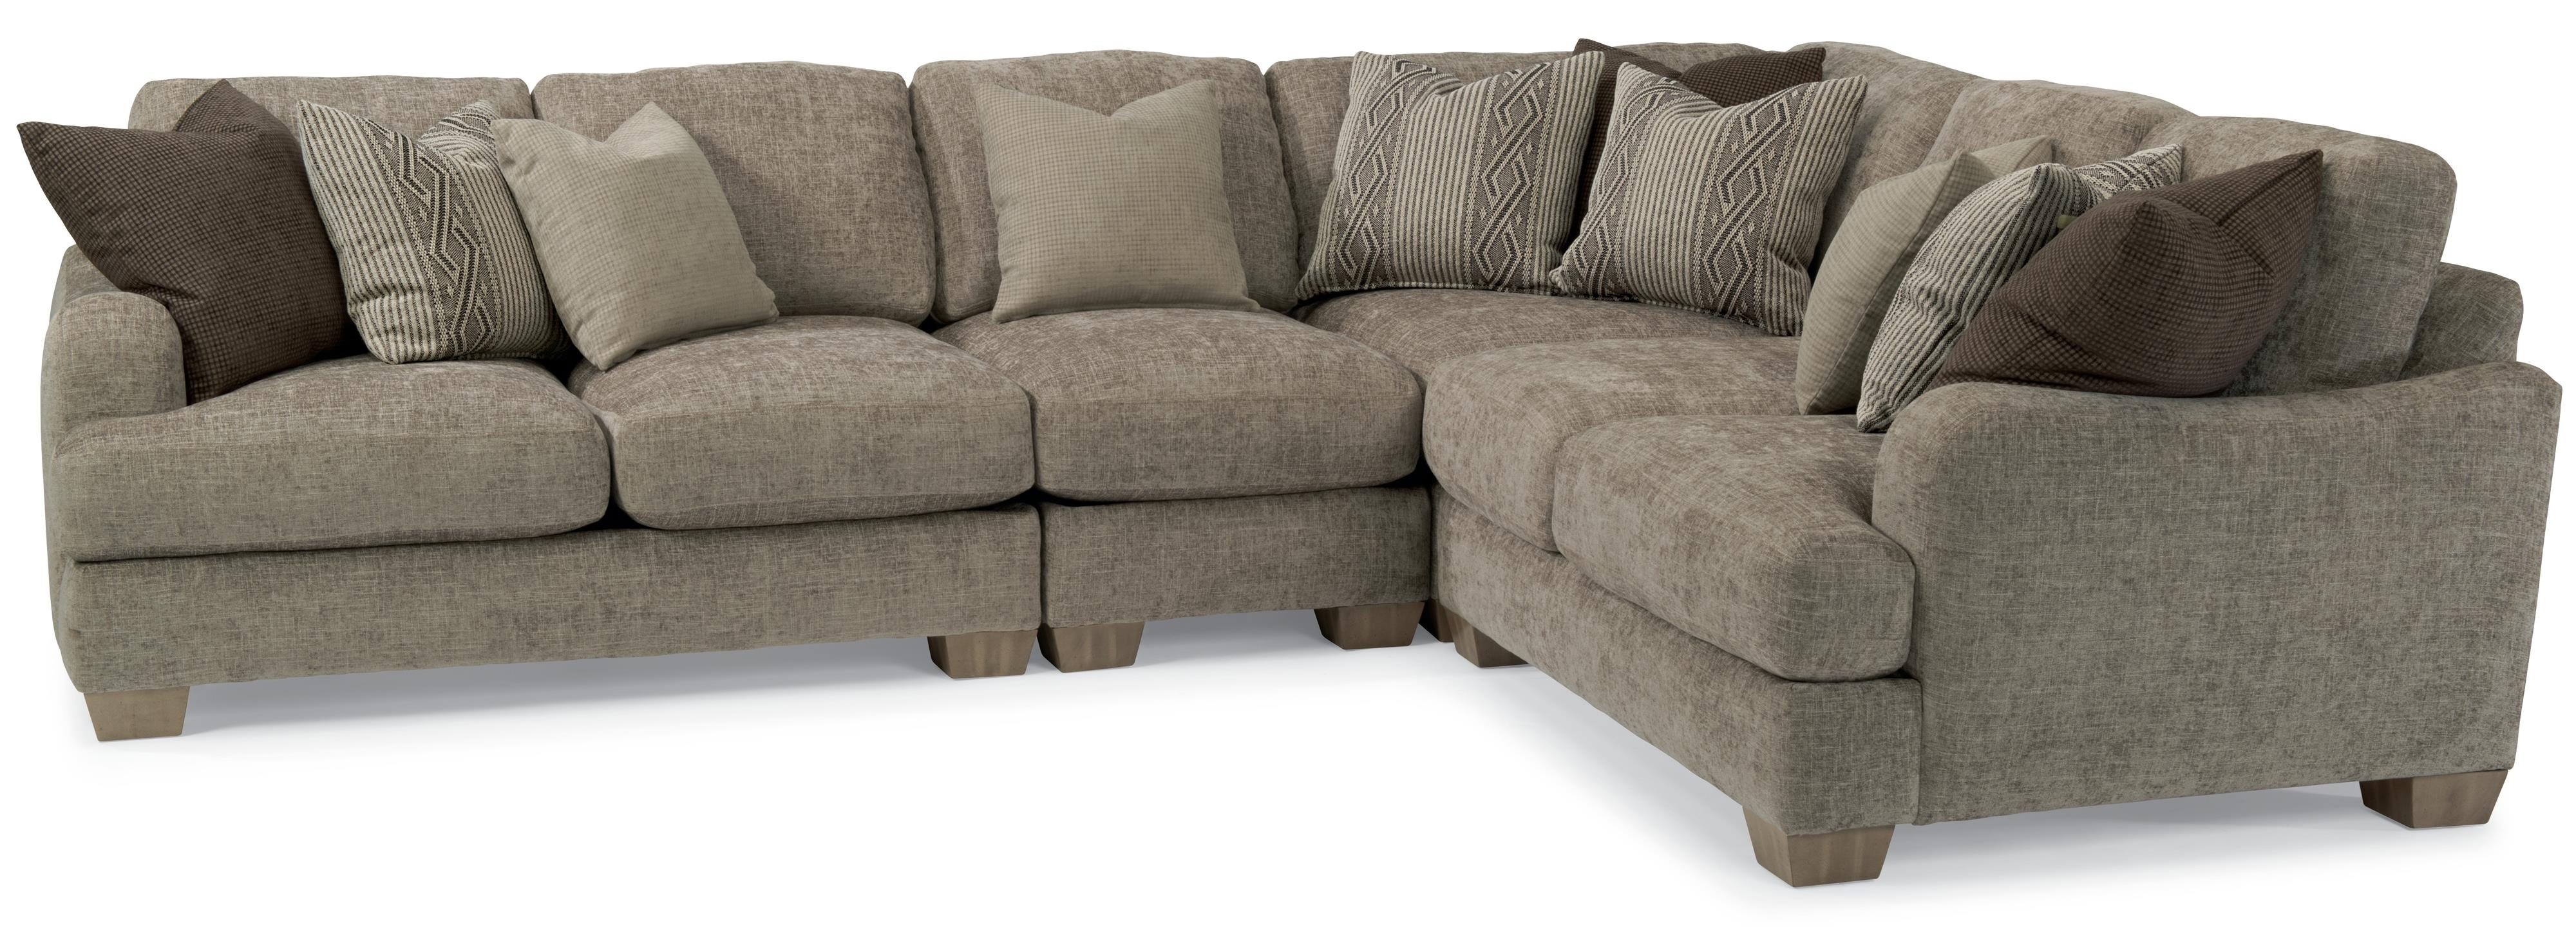 Best And Newest Johnson City Tn Sectional Sofas Within Vanessa Sectional Sofa With Loose Pillow Backflexsteel (View 5 of 15)